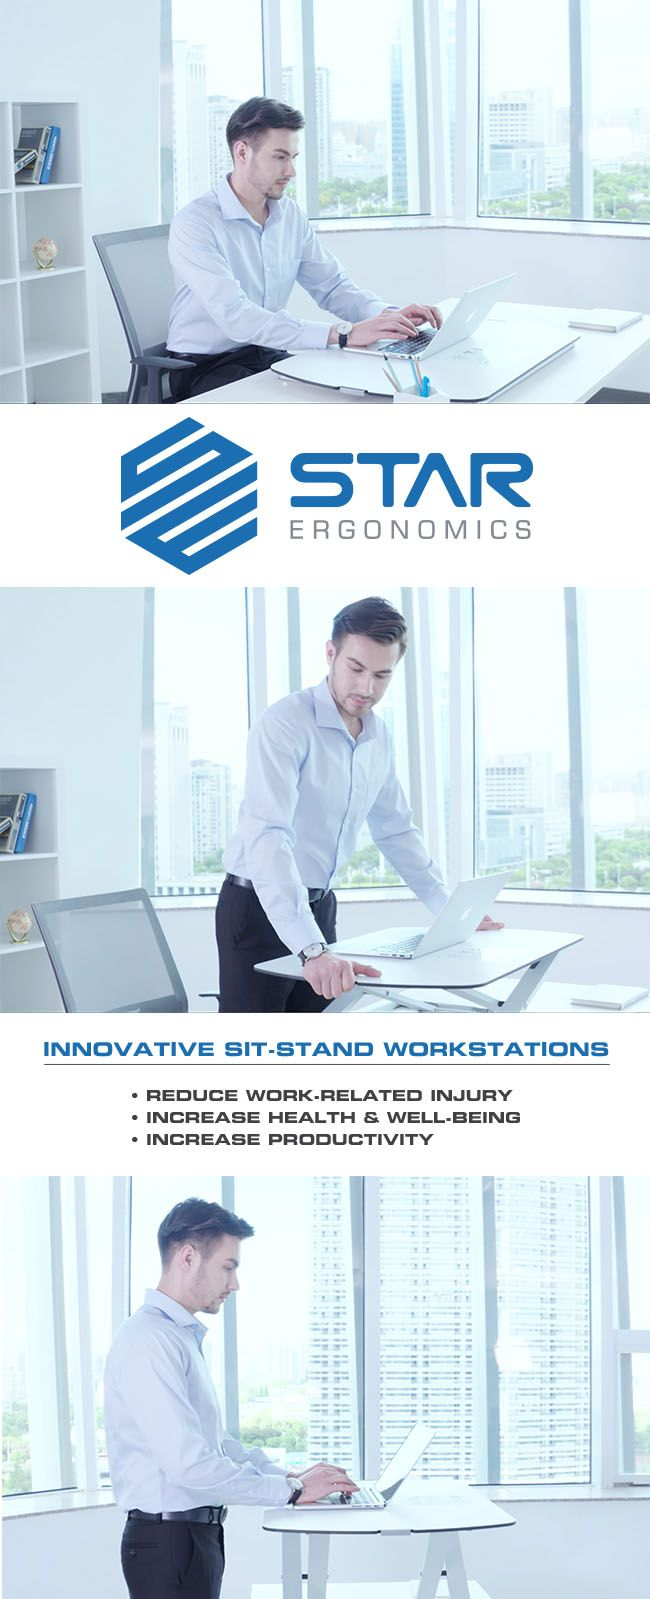 Star Ergonomics - Innovative Ergonomic Workstations - Improve Health & Productivity - Introductory Offer: Pre-Order and Save 25% on All Star Ergonomics Products Use Coupon Code: SEPIN25 Estimated Delivery is 8 Weeks